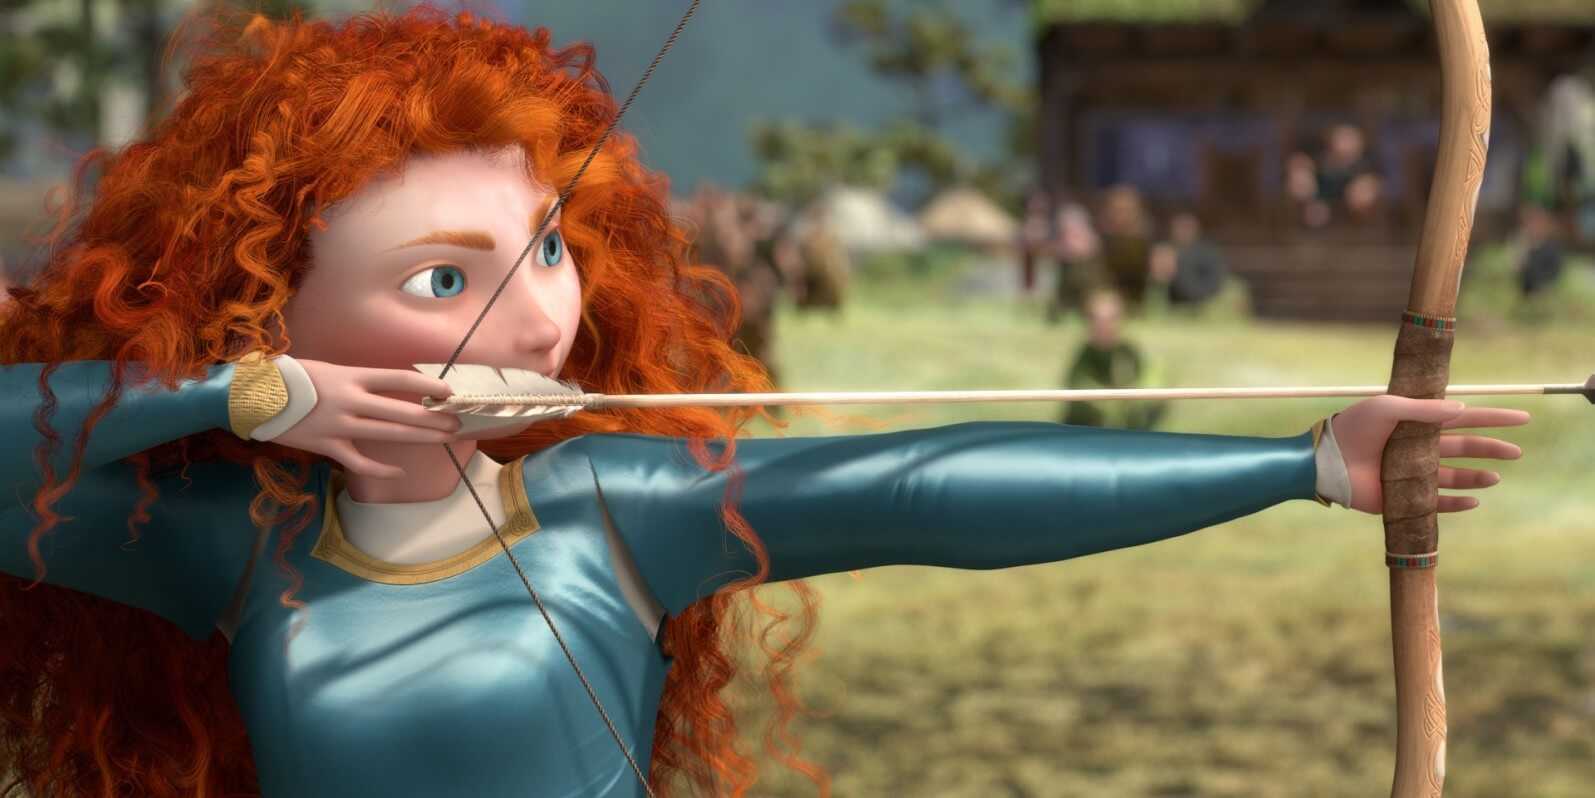 Princess Merida - Original image